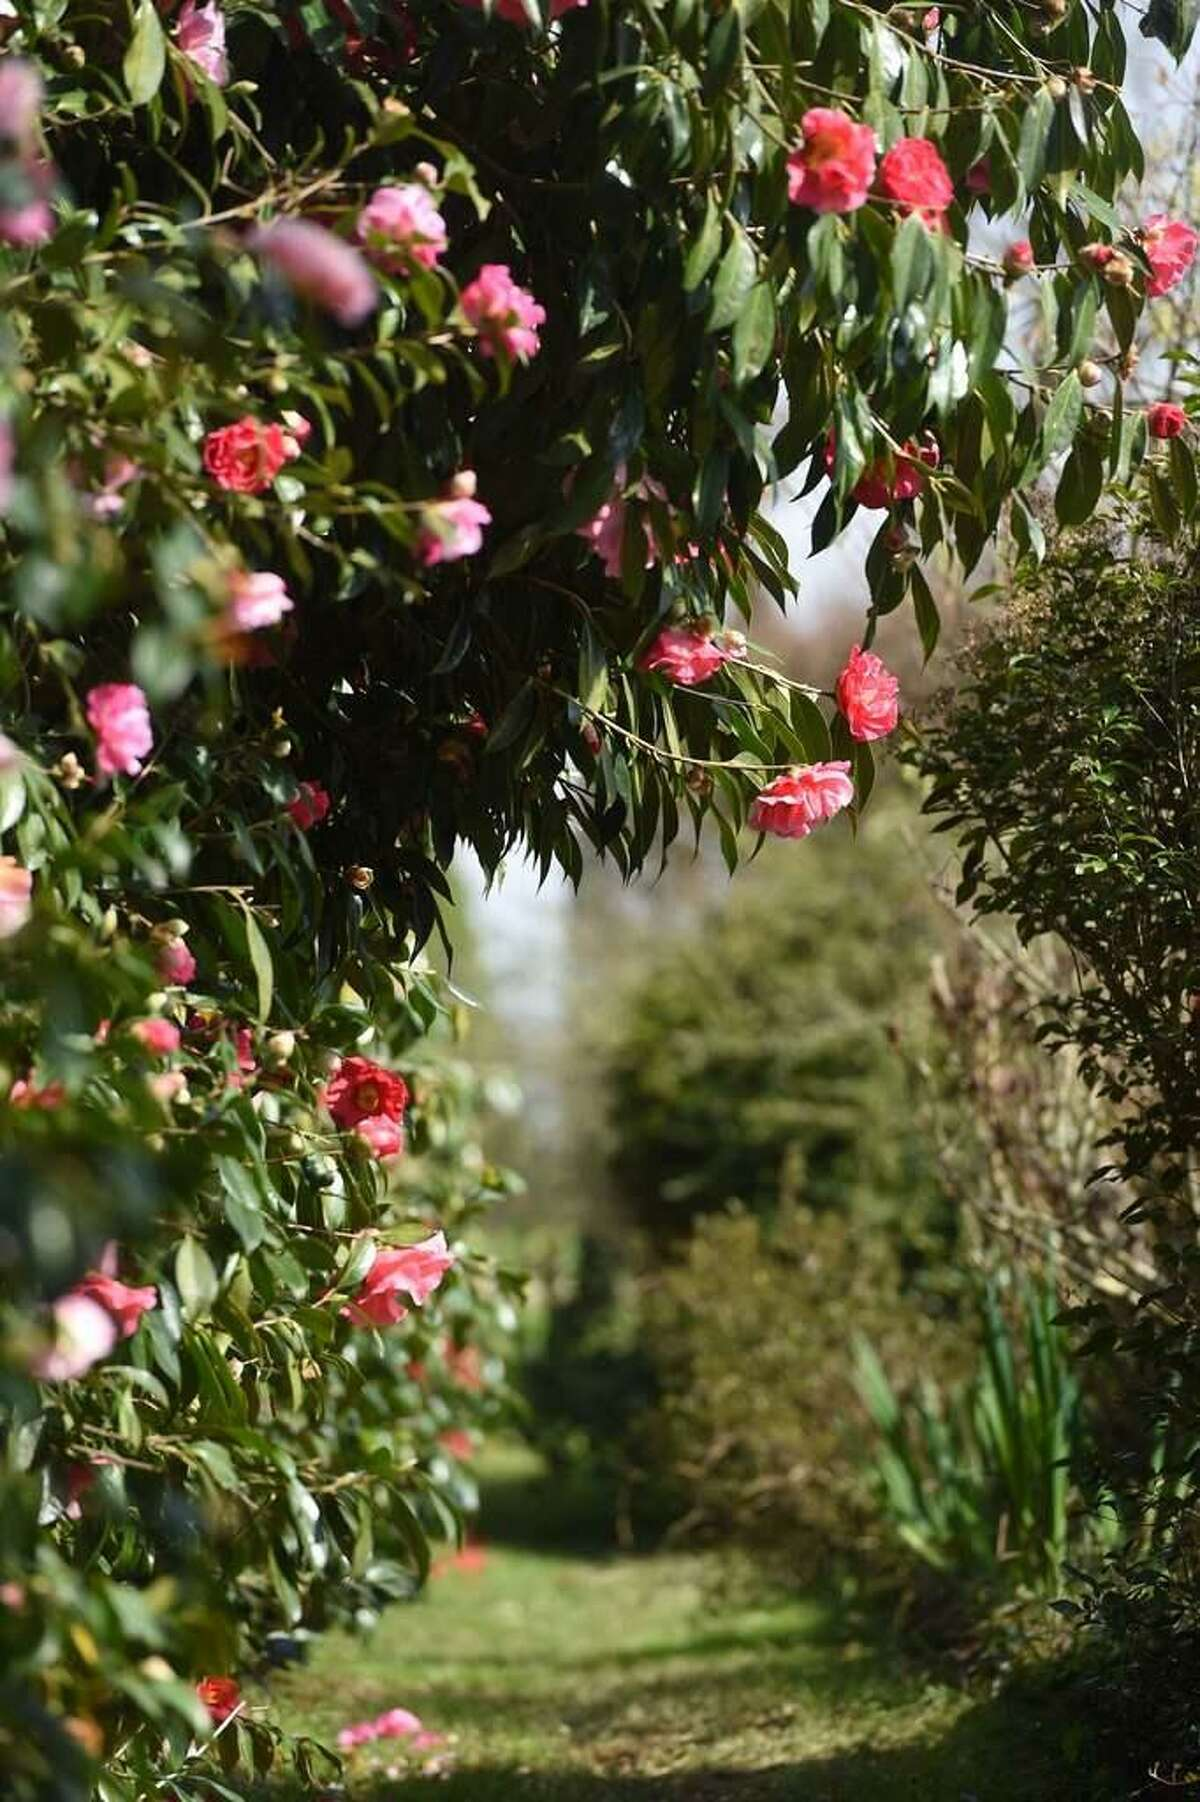 Camellia are evergreen, blooming shrubs that can grow to around 10 feet tall.